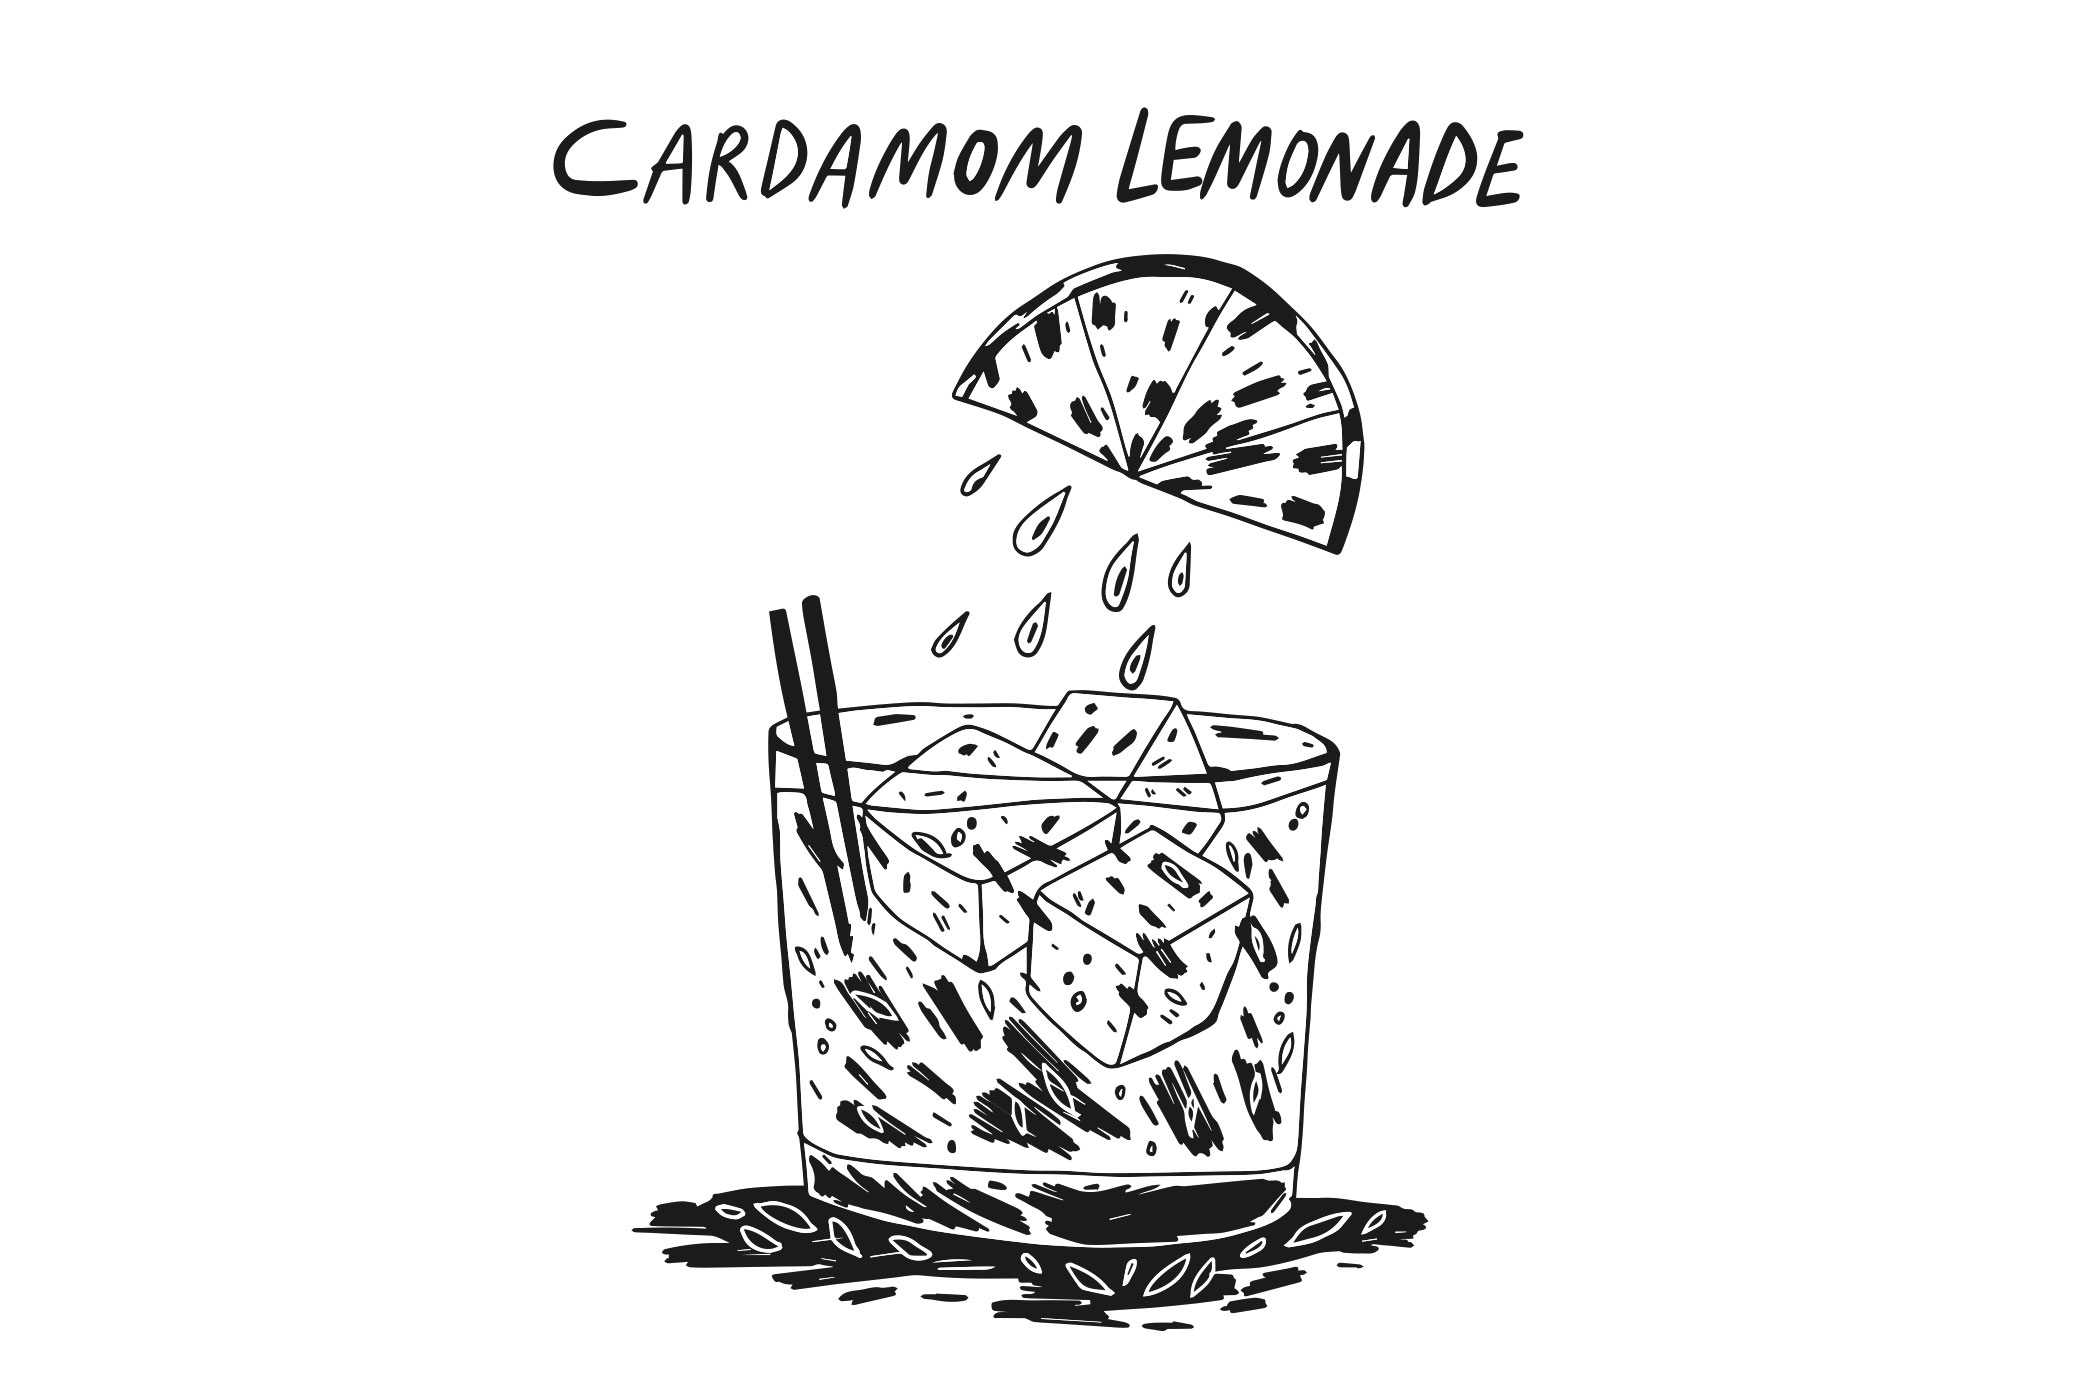 Cardamom Lemonade web2